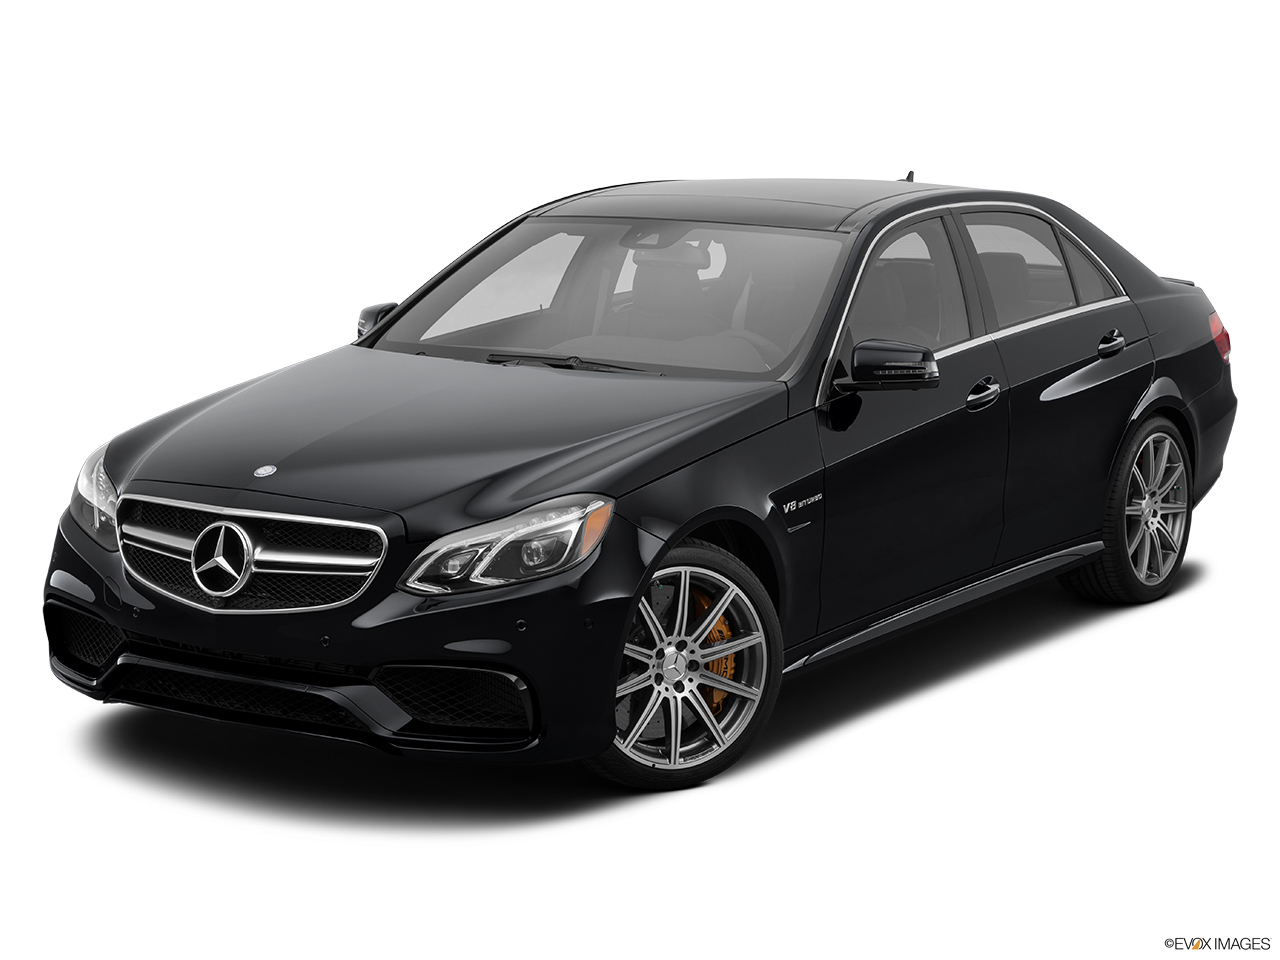 2014 mercedes benz e class sedan e63 amg s model 4matic for Mercedes benz e63 s amg